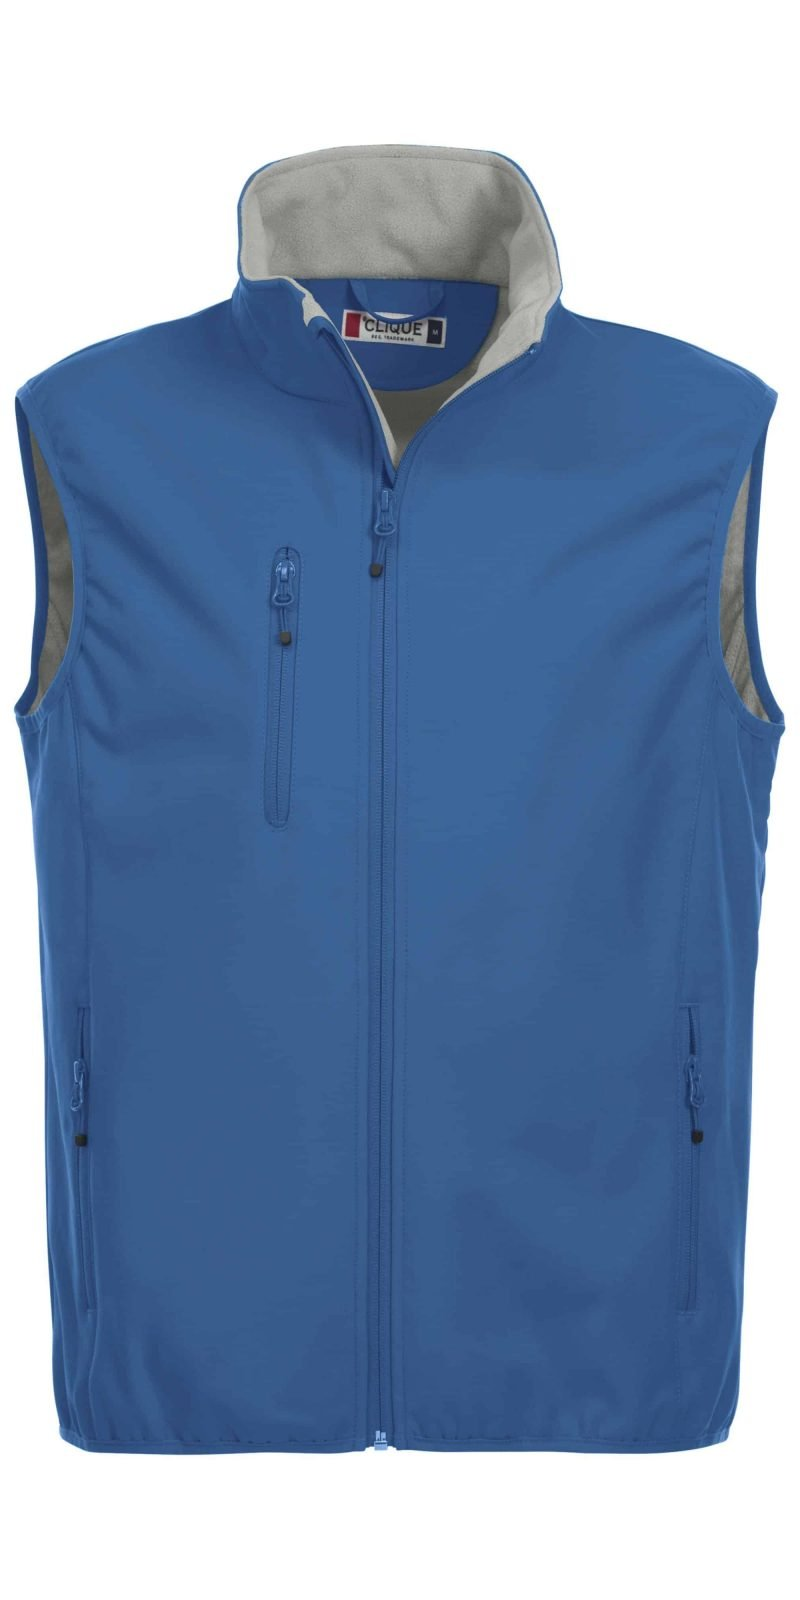 RSrnYC Men's Basic Softshell Vest